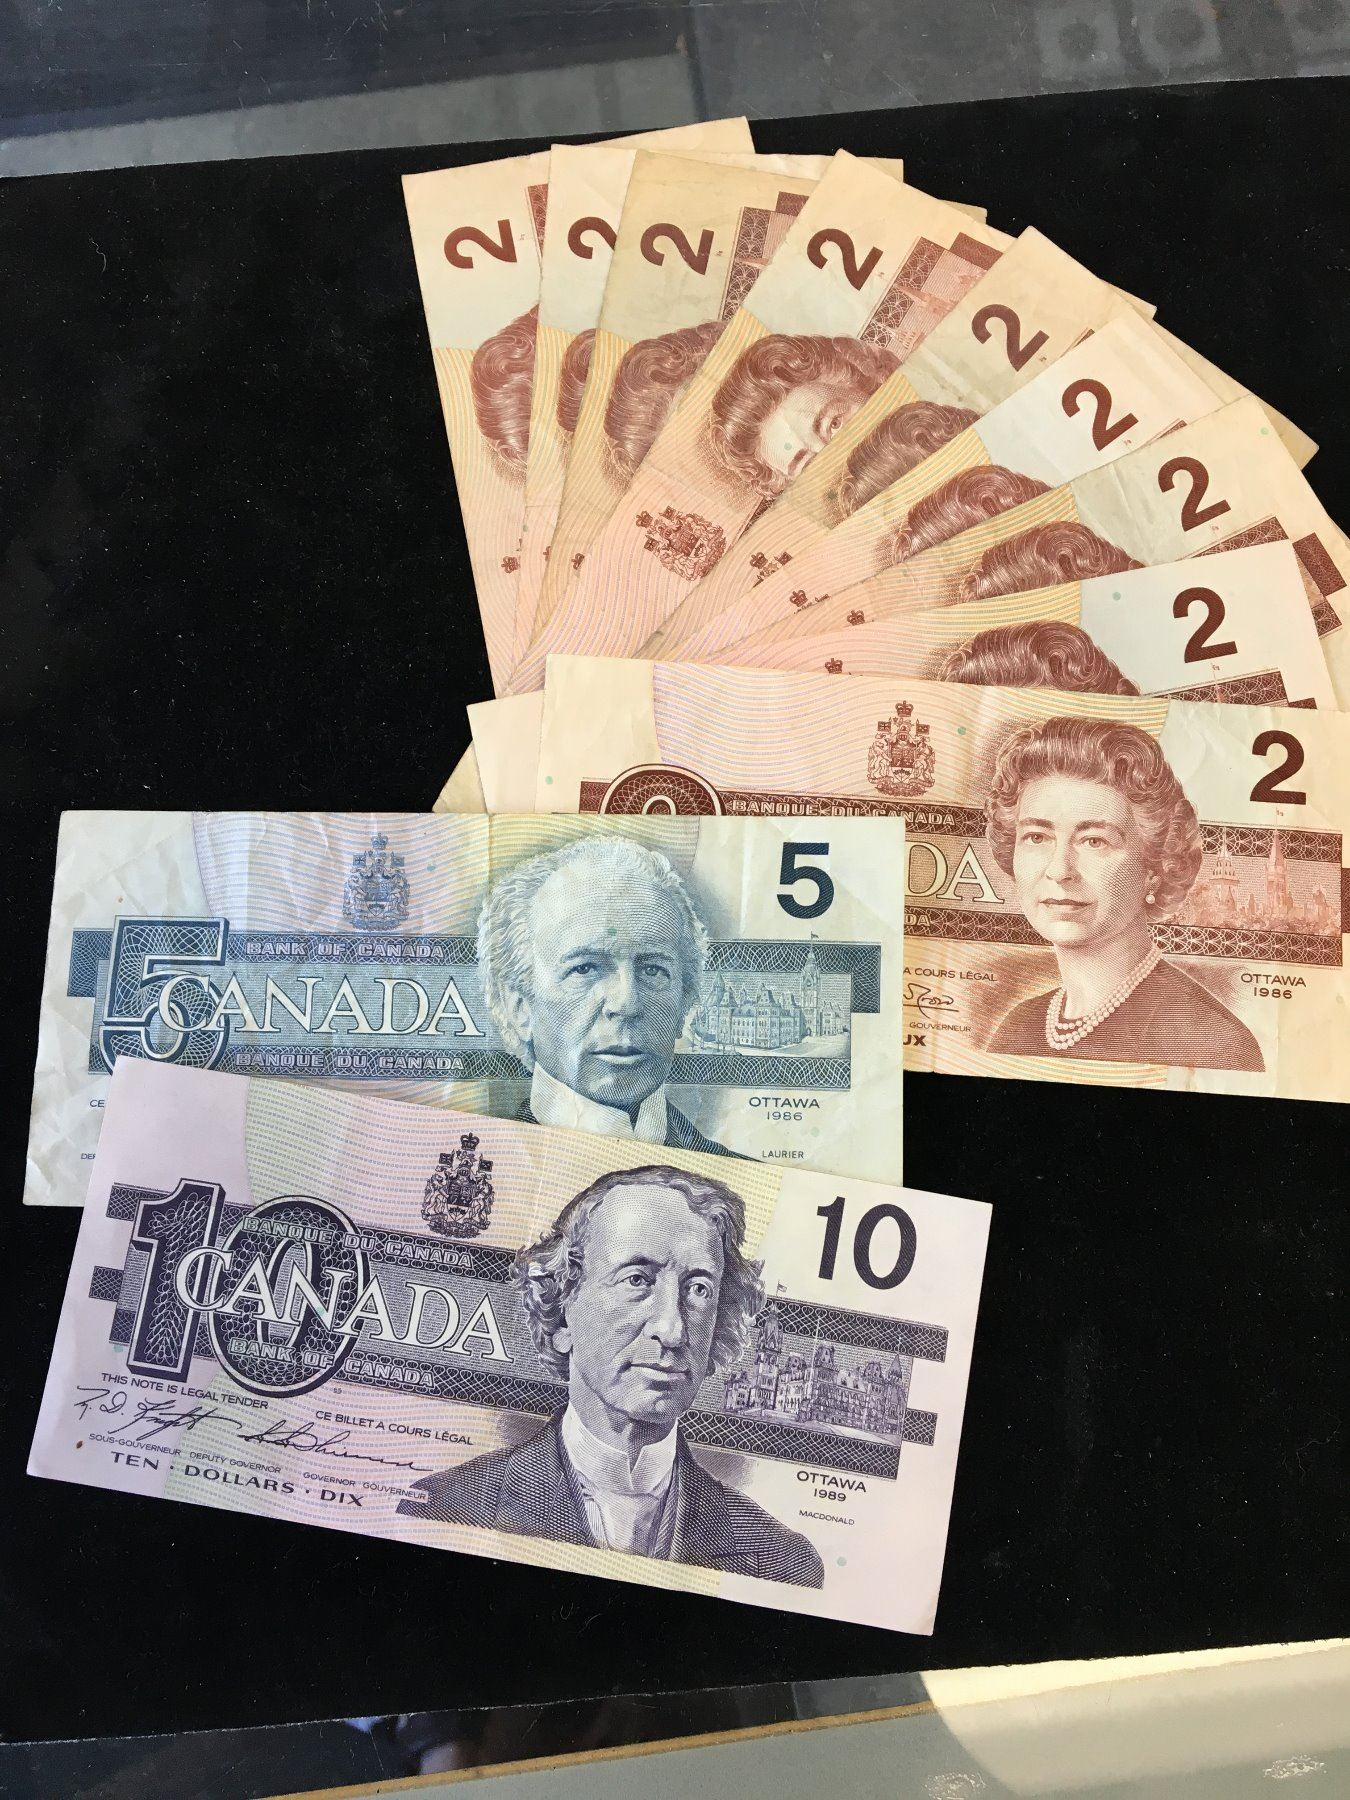 1986 CANADA BANKNOTE LOT OF $33 FACE VALUE